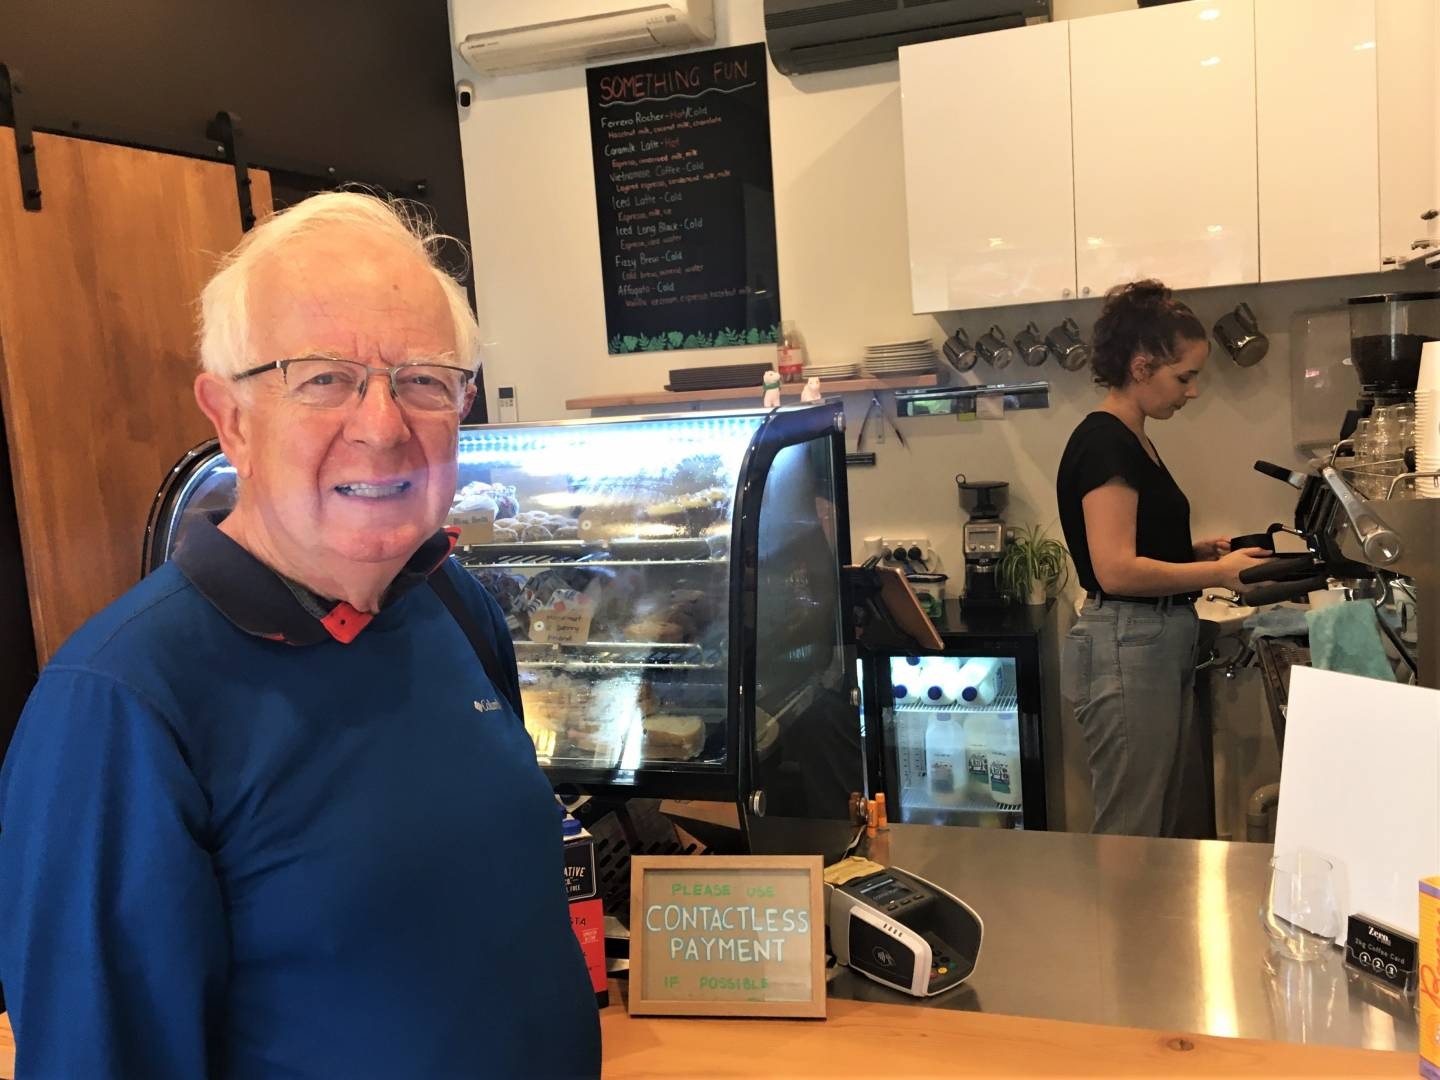 """But we did succeed in getting coffee at a different cafe. Good coffee too, and John was so appreciative that he would have liked to hug the attractive barista. That is, until he saw the """"Contactless Payment"""" directive on the counter."""